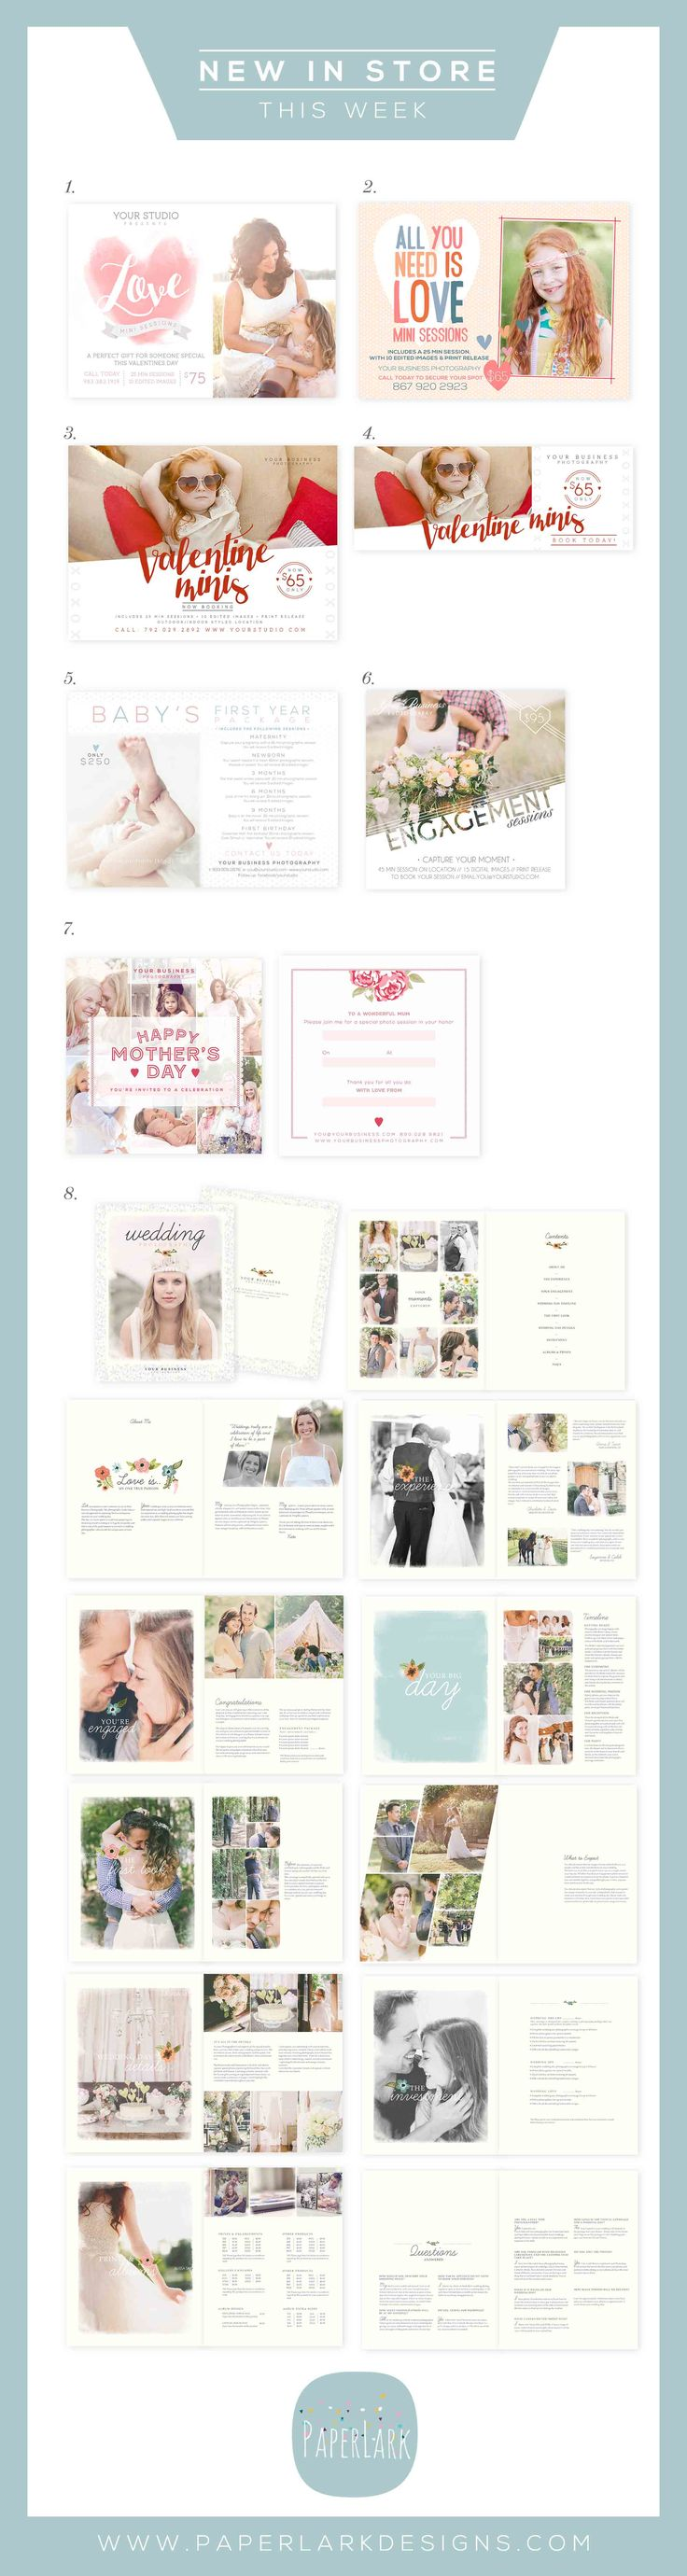 This weeks latest template designs from Paper Lark Photography templates shop http://www.paperlarkdesigns.com/collections/whats-new